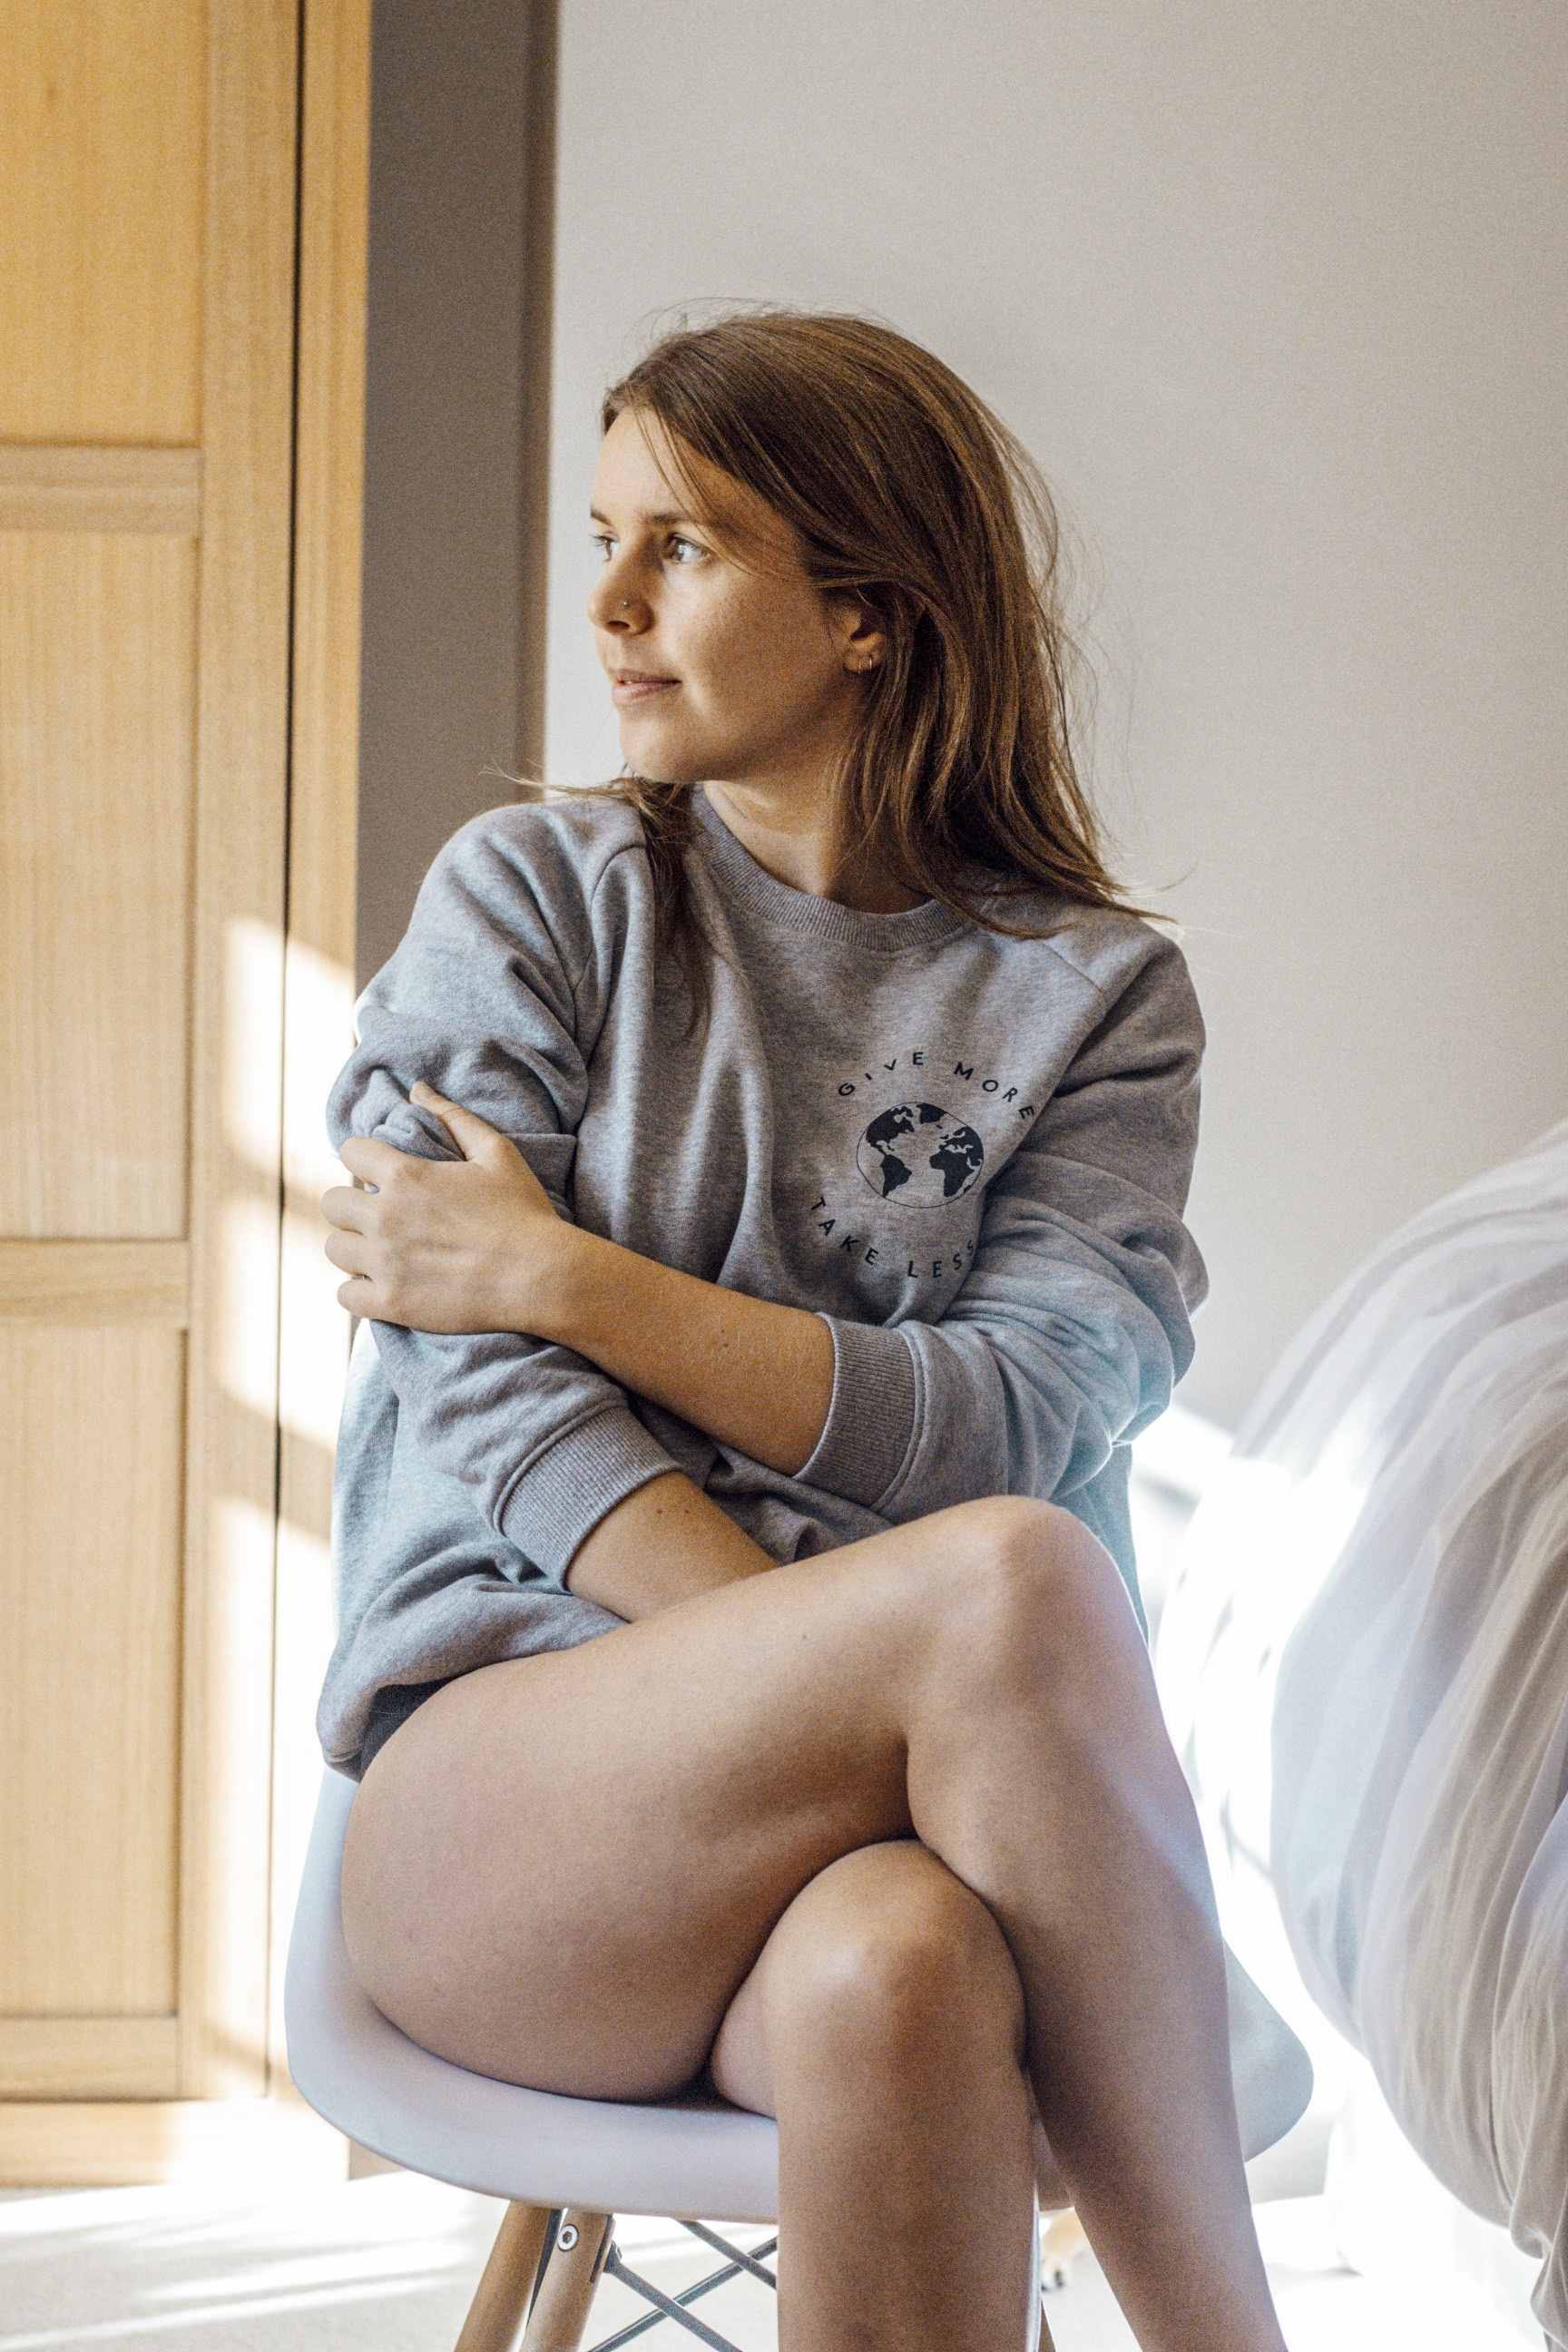 Give More Sweatshirt - Part of the brand new Blue Ollis collection.We use certified organic fabrics and renewable energy in our supply chain. Order yours before 3pm for fast delivery.